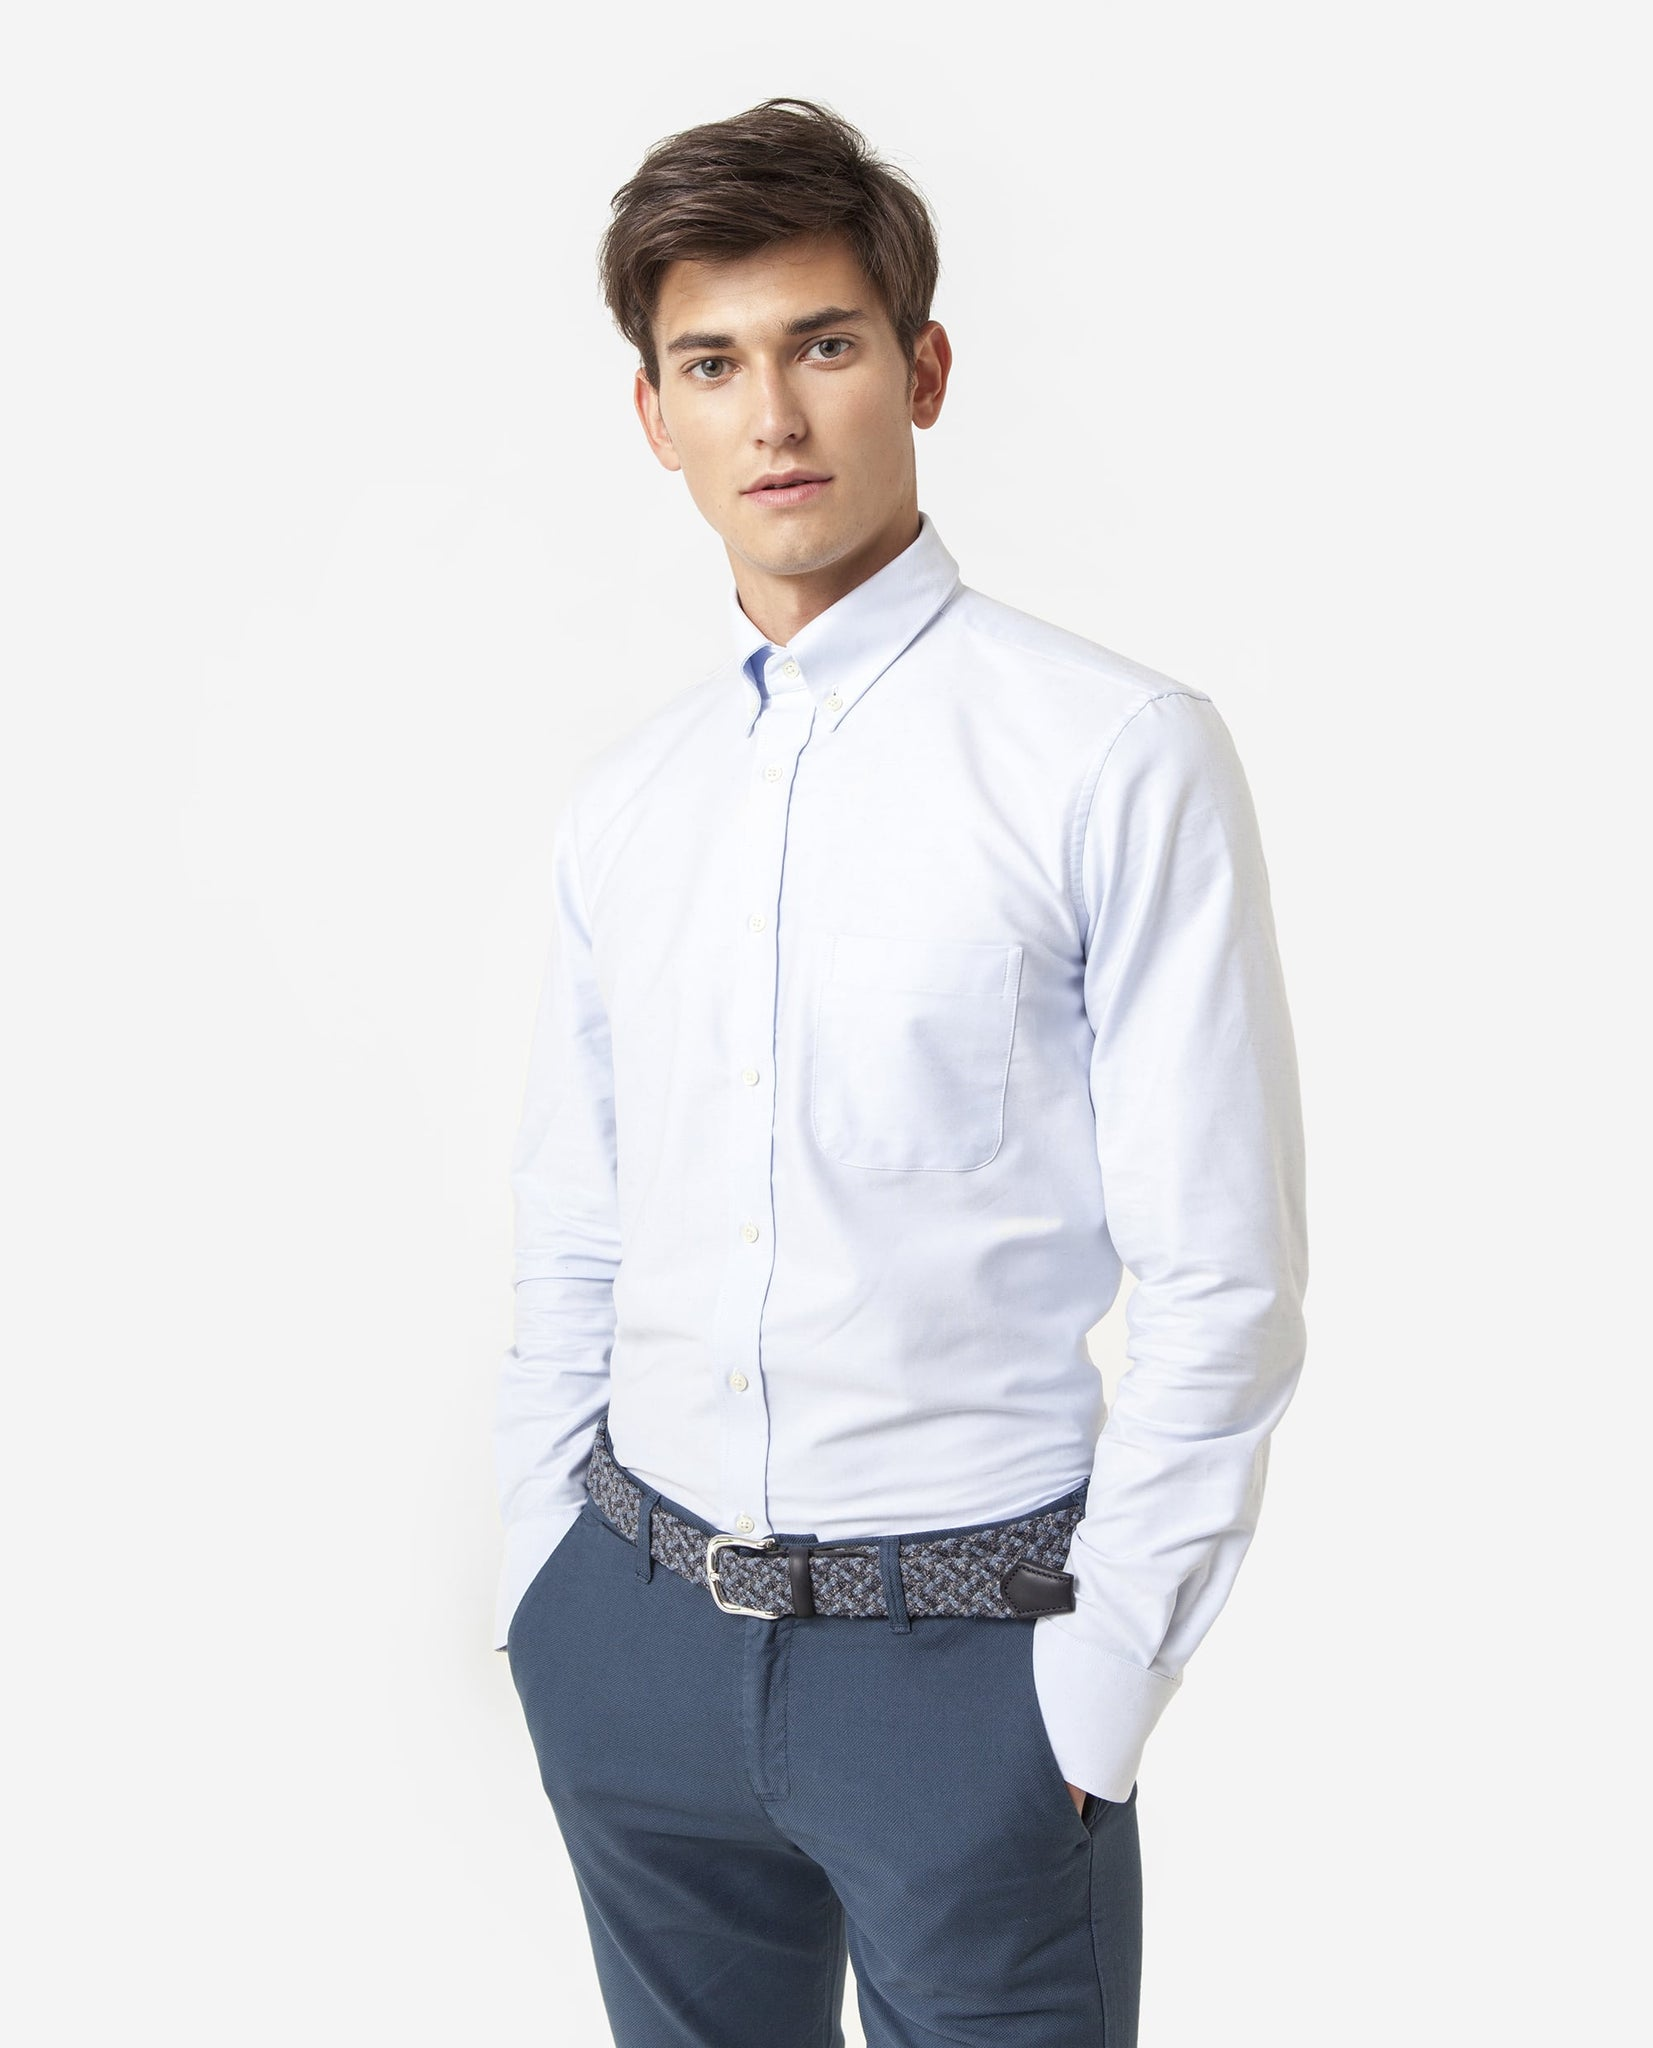 Camisa Oxford Bolsillo Celeste OUTLET